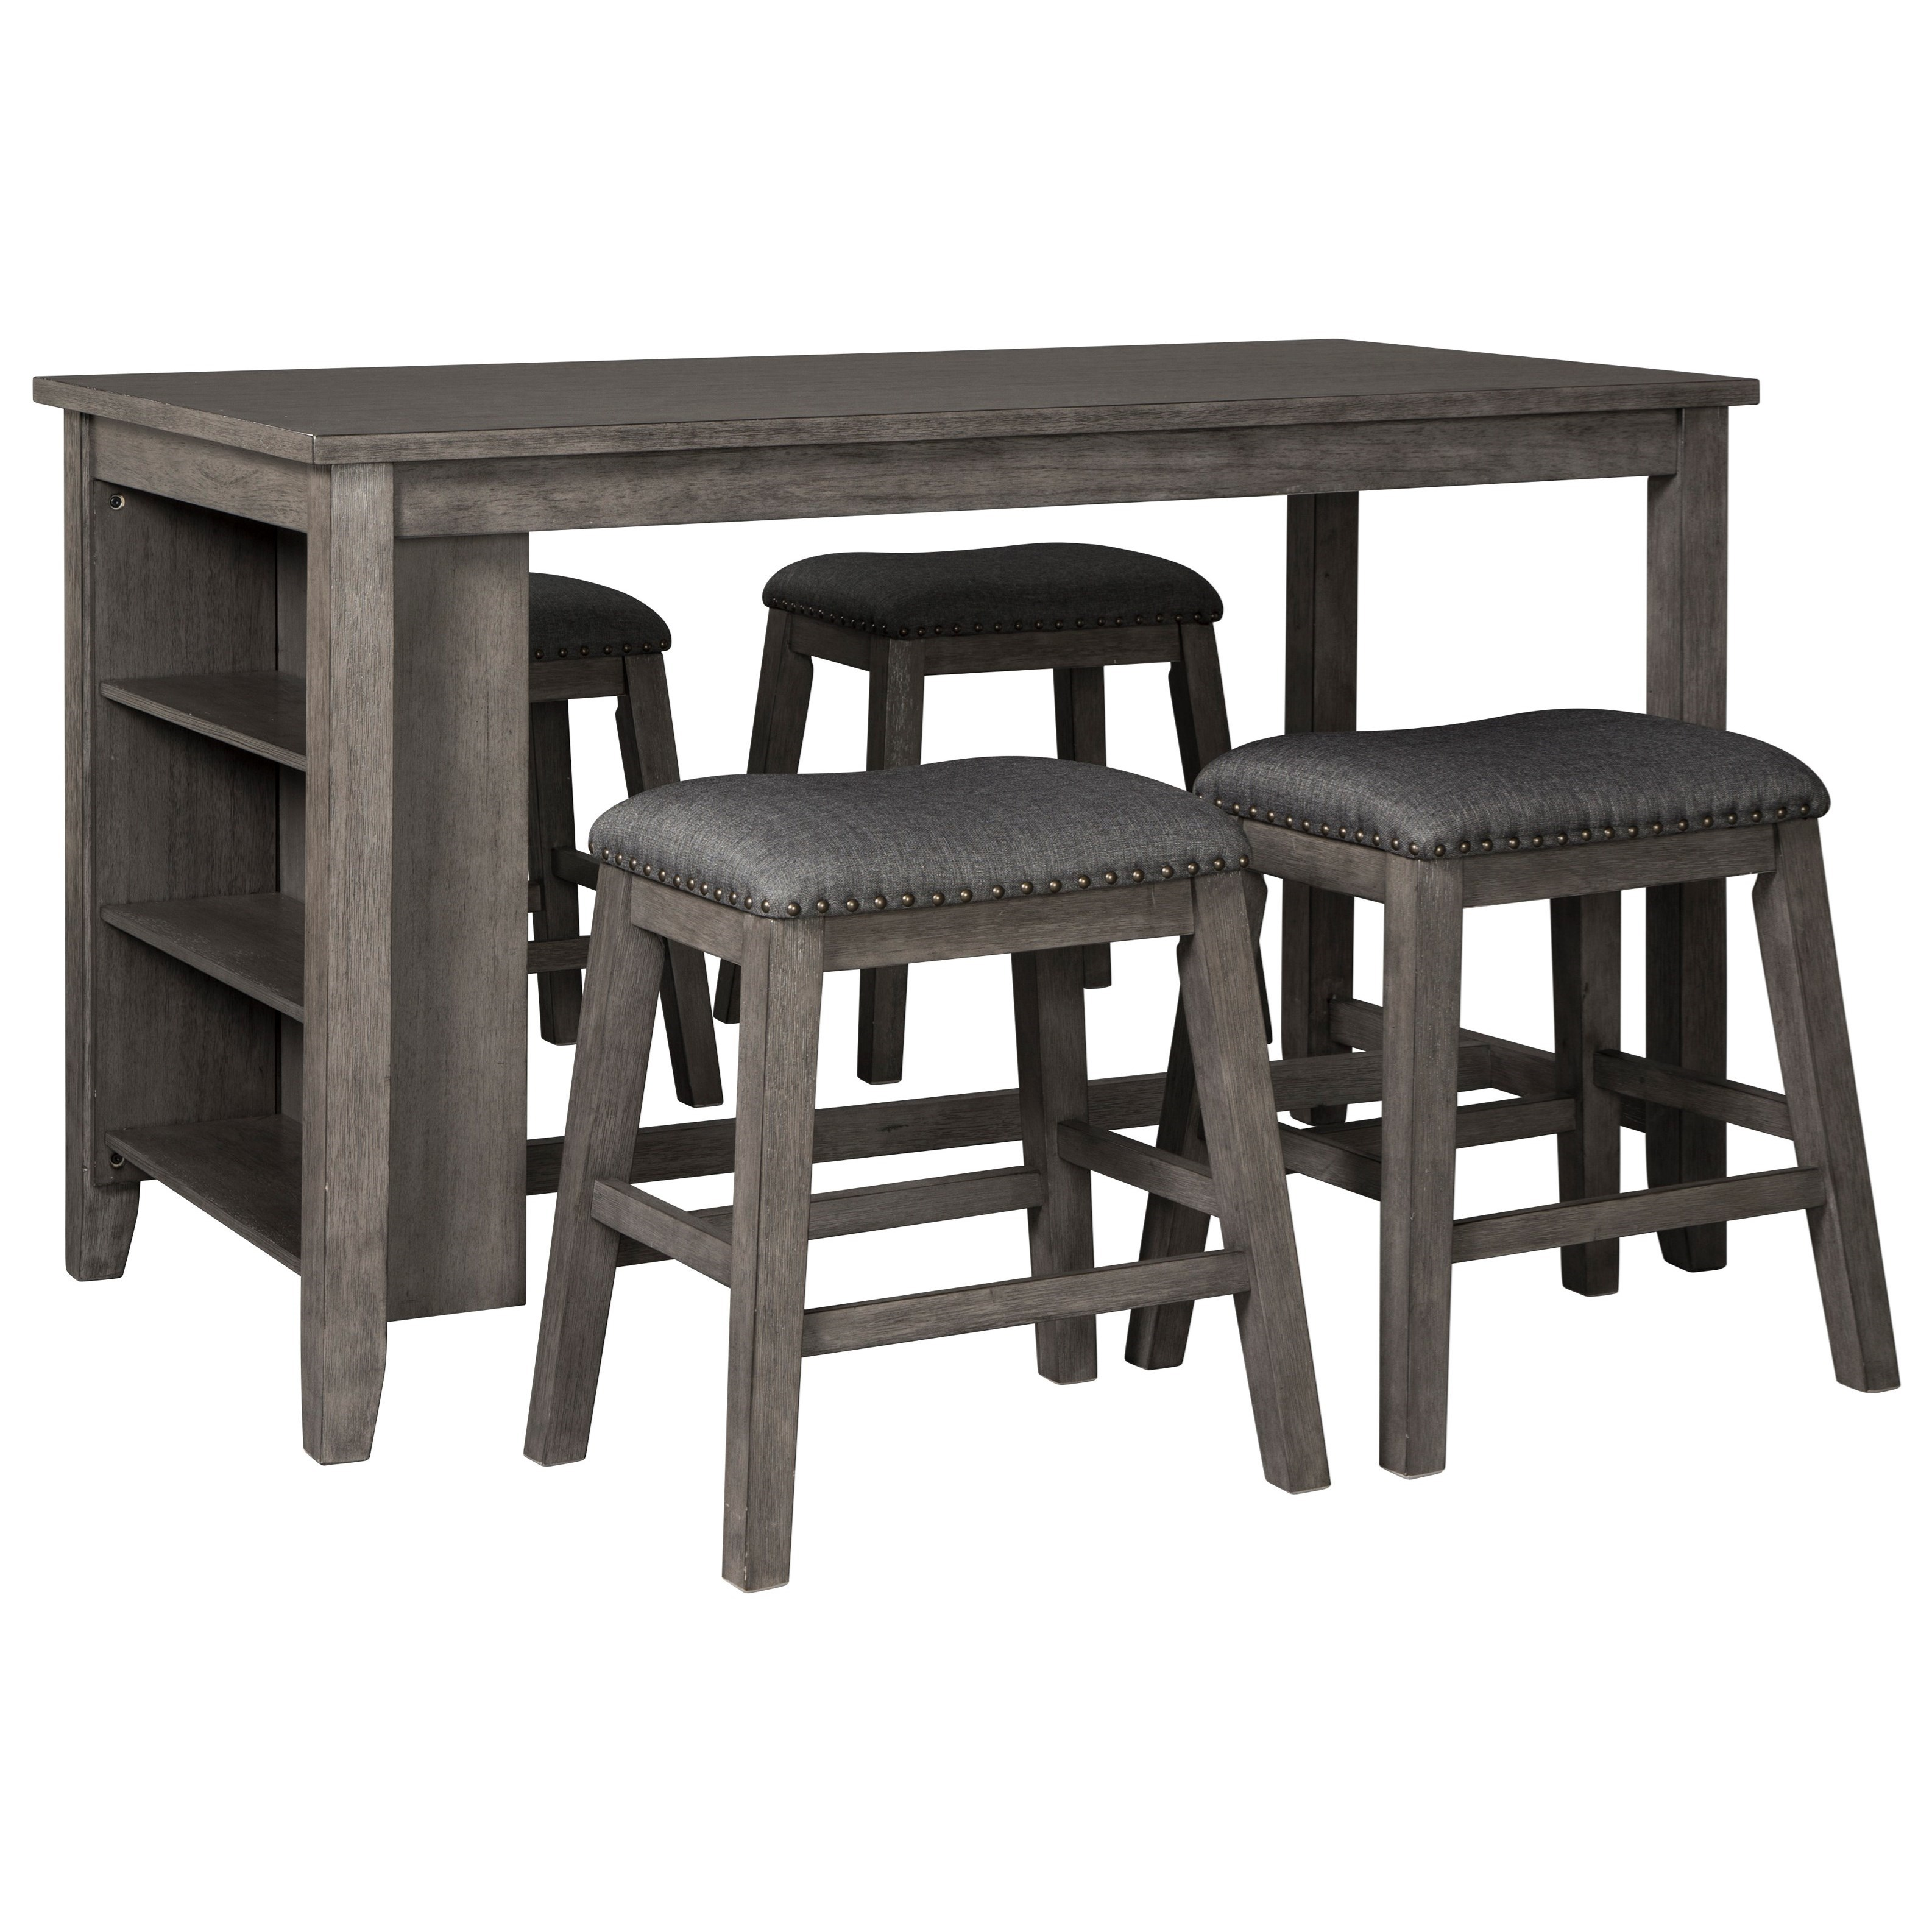 Caitbrook 5-Piece Dining Set by Signature Design by Ashley at Red Knot